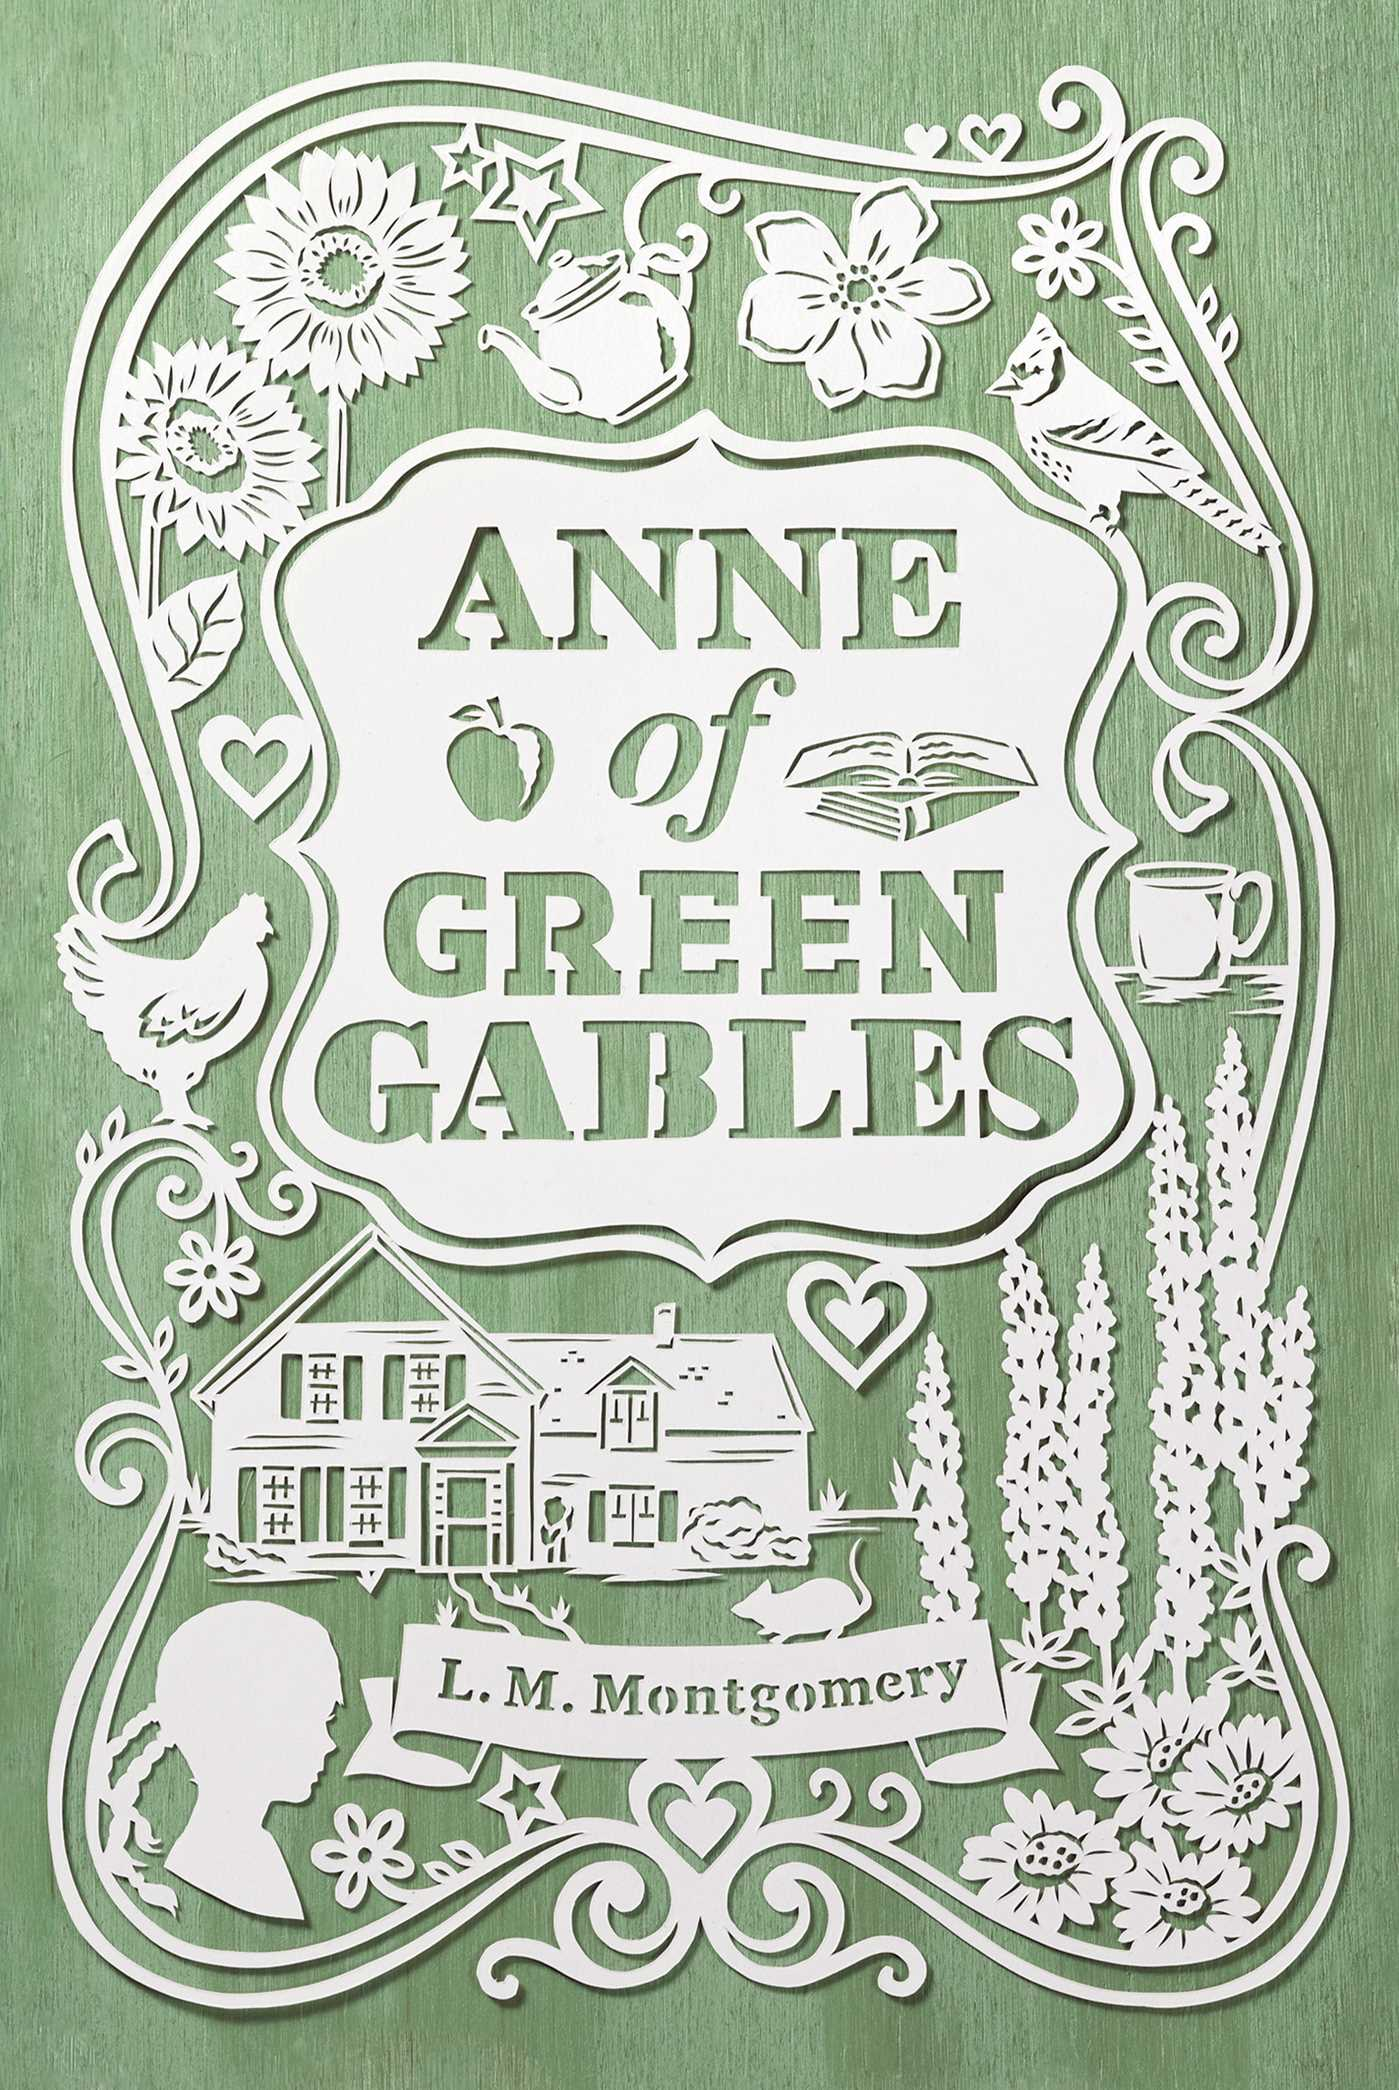 Anne of Green Gables Marketing